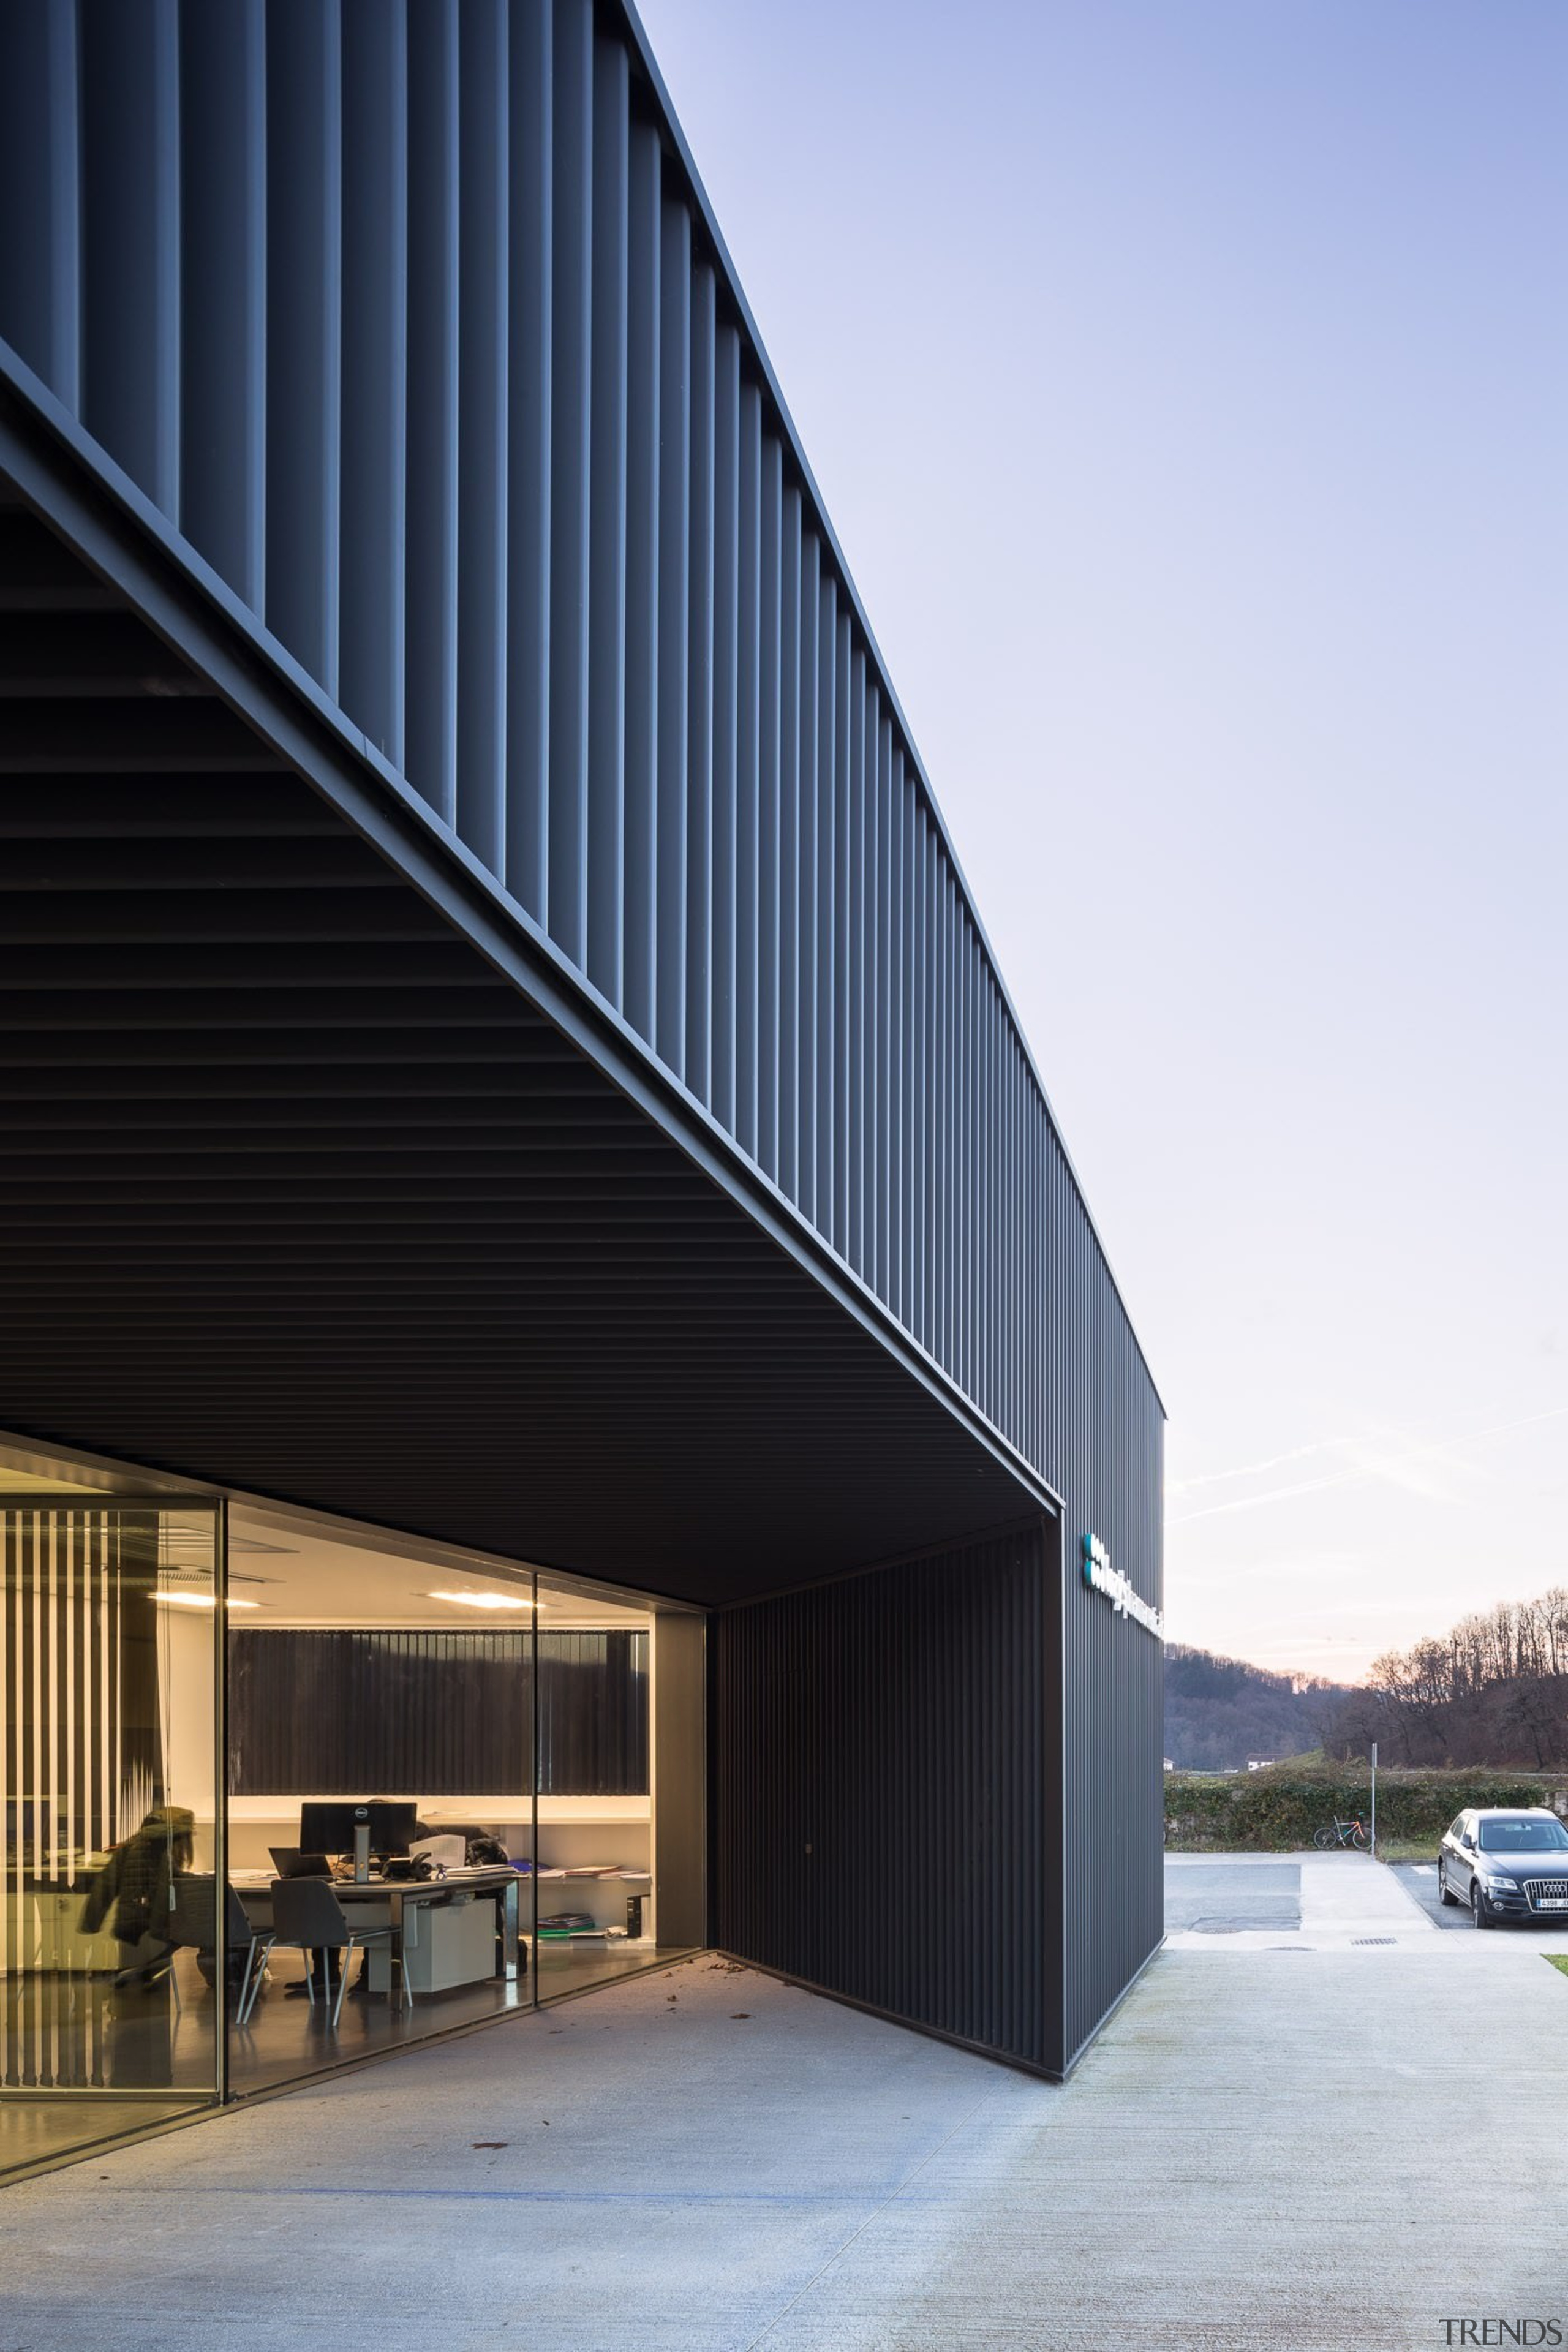 The angle of this wall means privacy for architecture, building, commercial building, corporate headquarters, facade, headquarters, house, siding, sky, structure, white, black